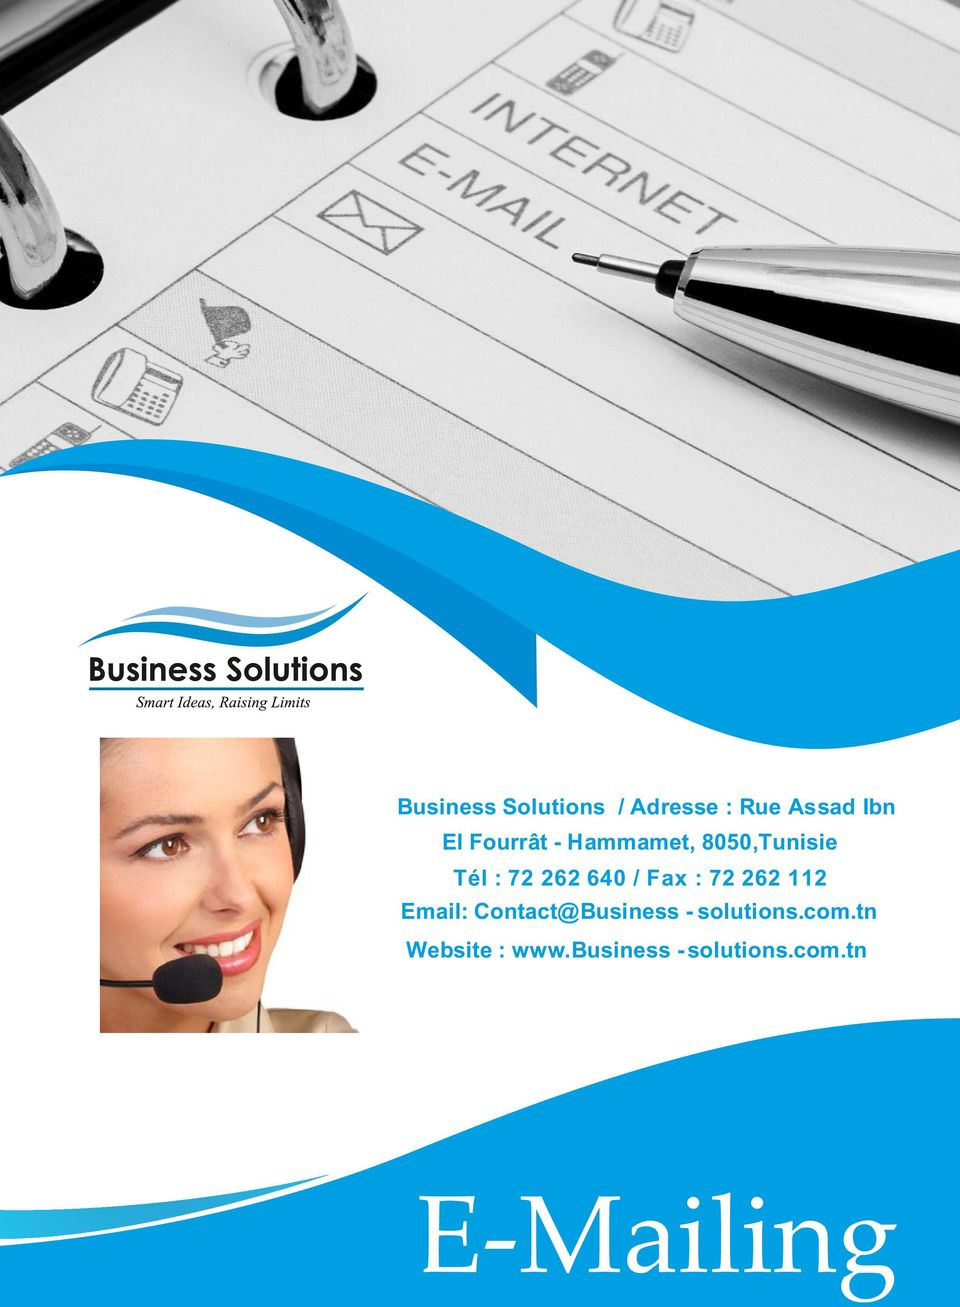 Fax : 72 262 112 Email: Contact@Business - solutions.